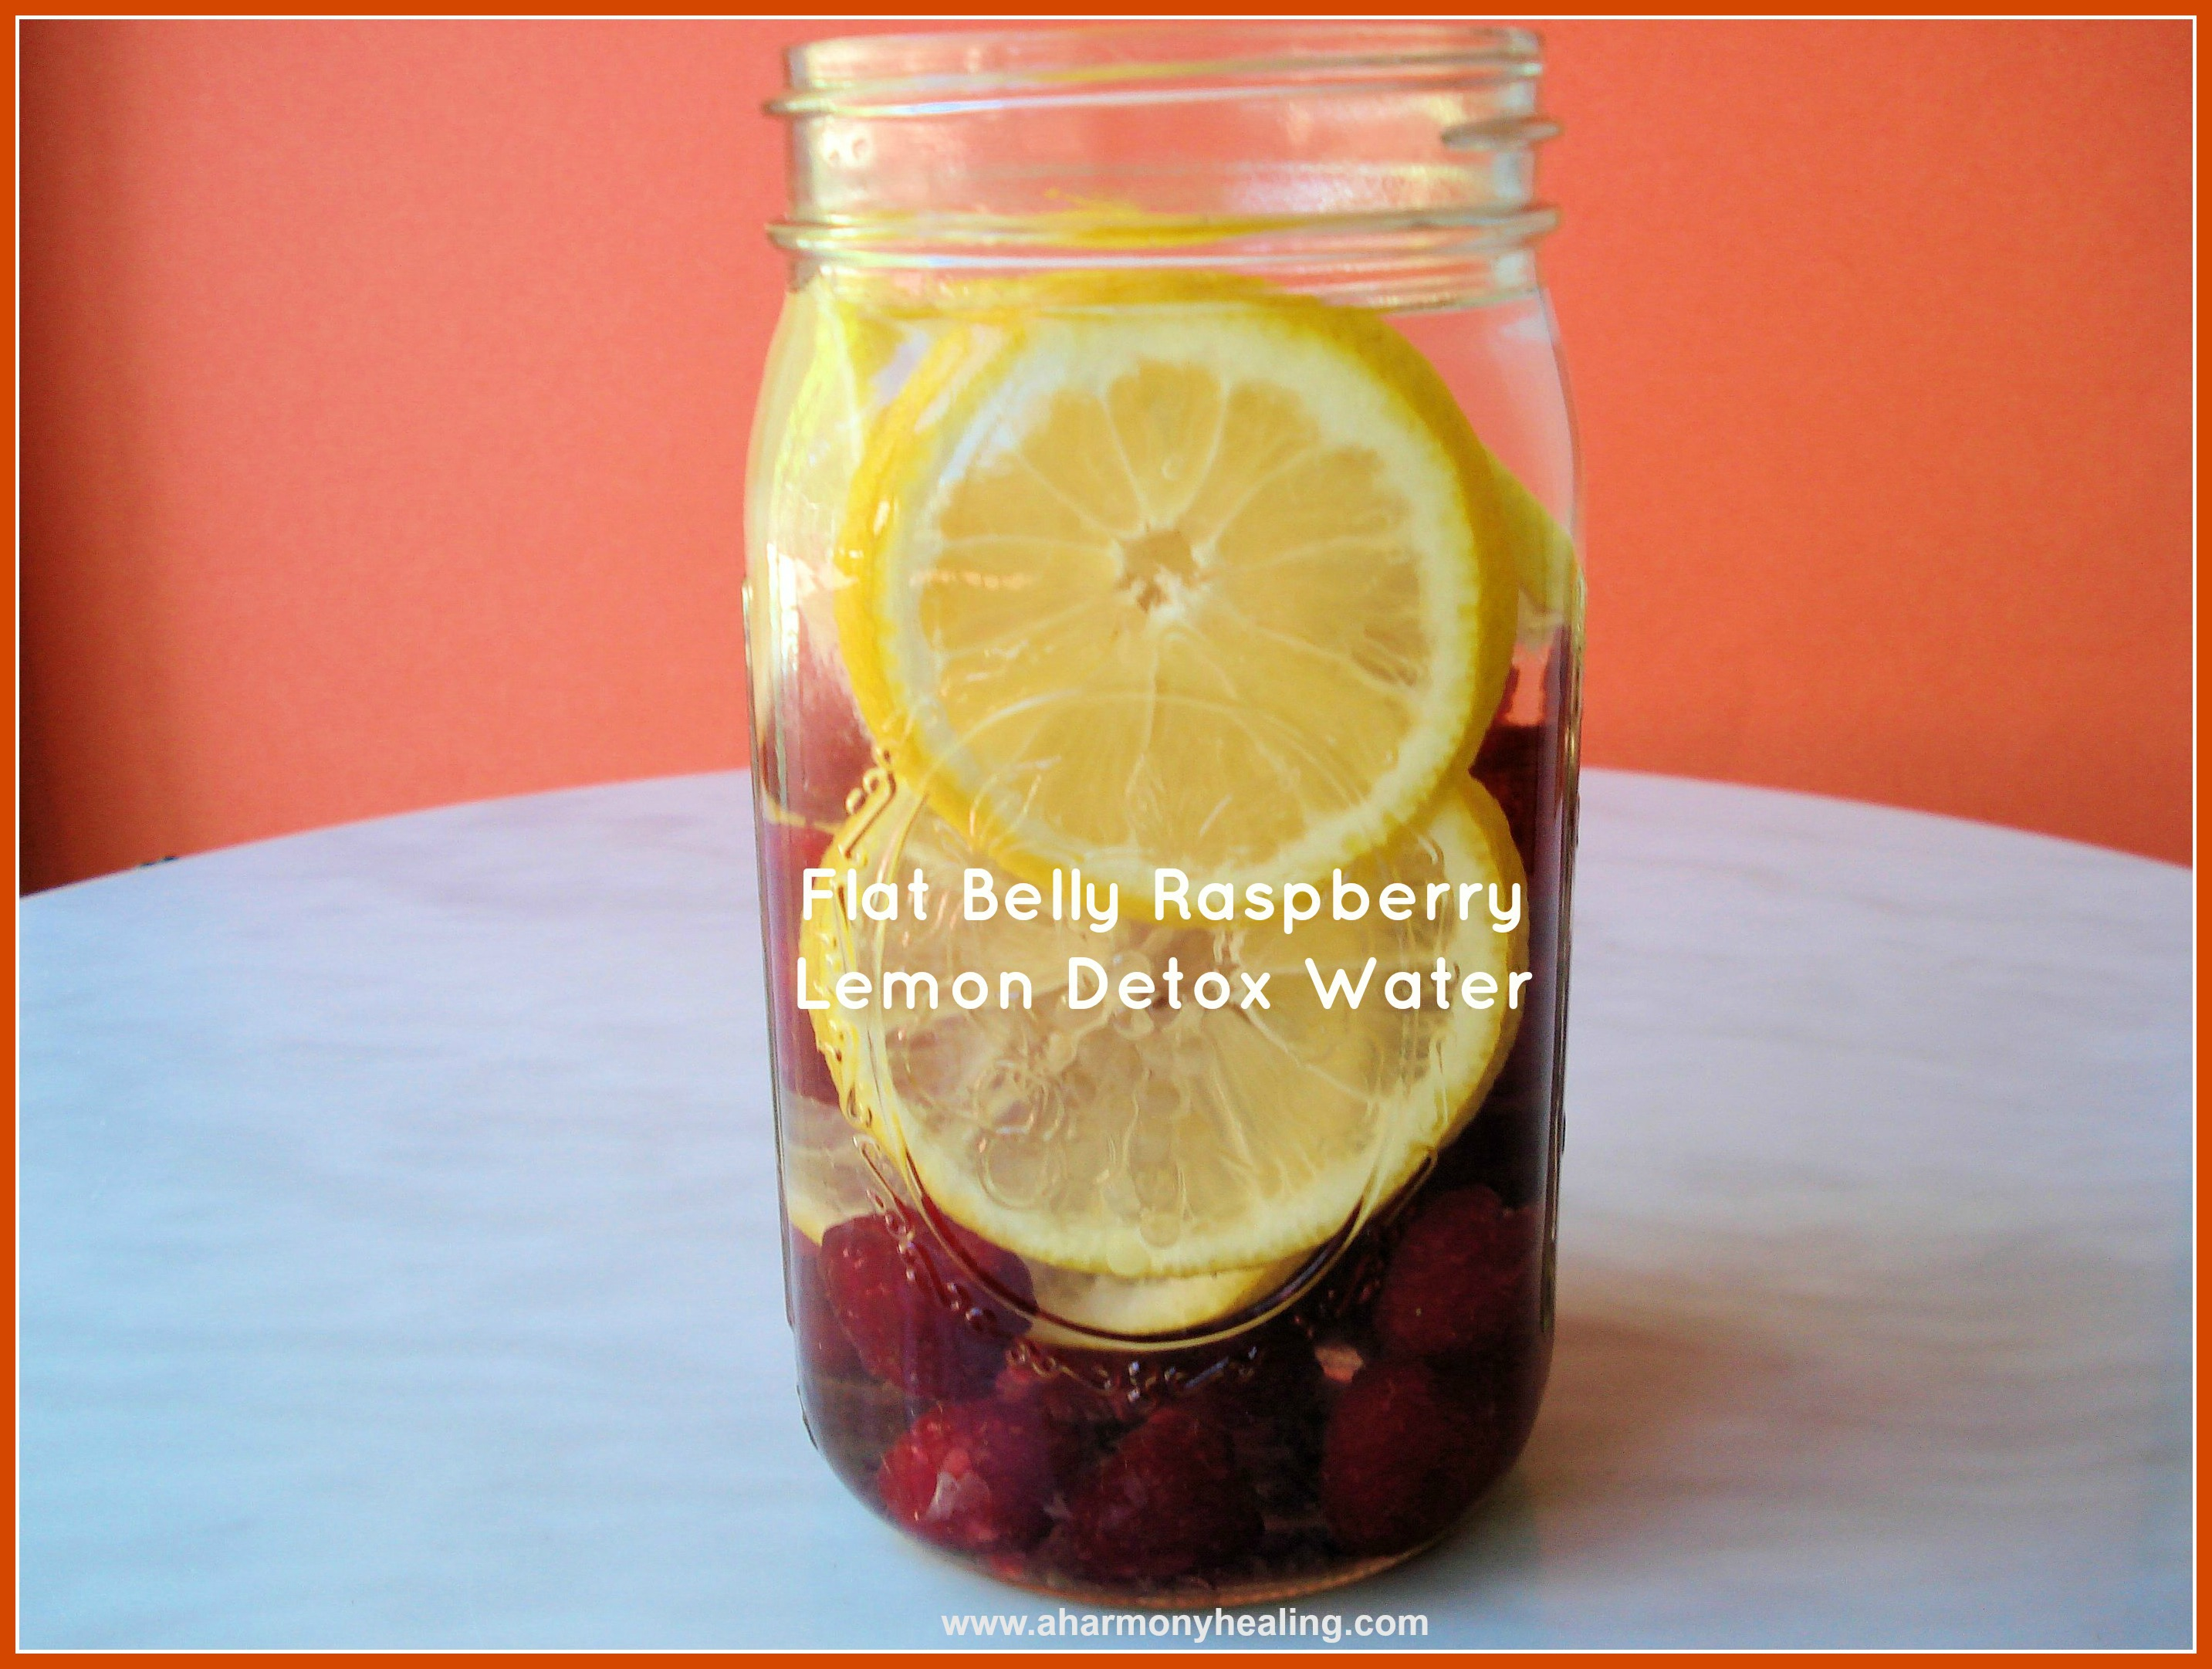 5. Flat Belly Raspberry & Lemon